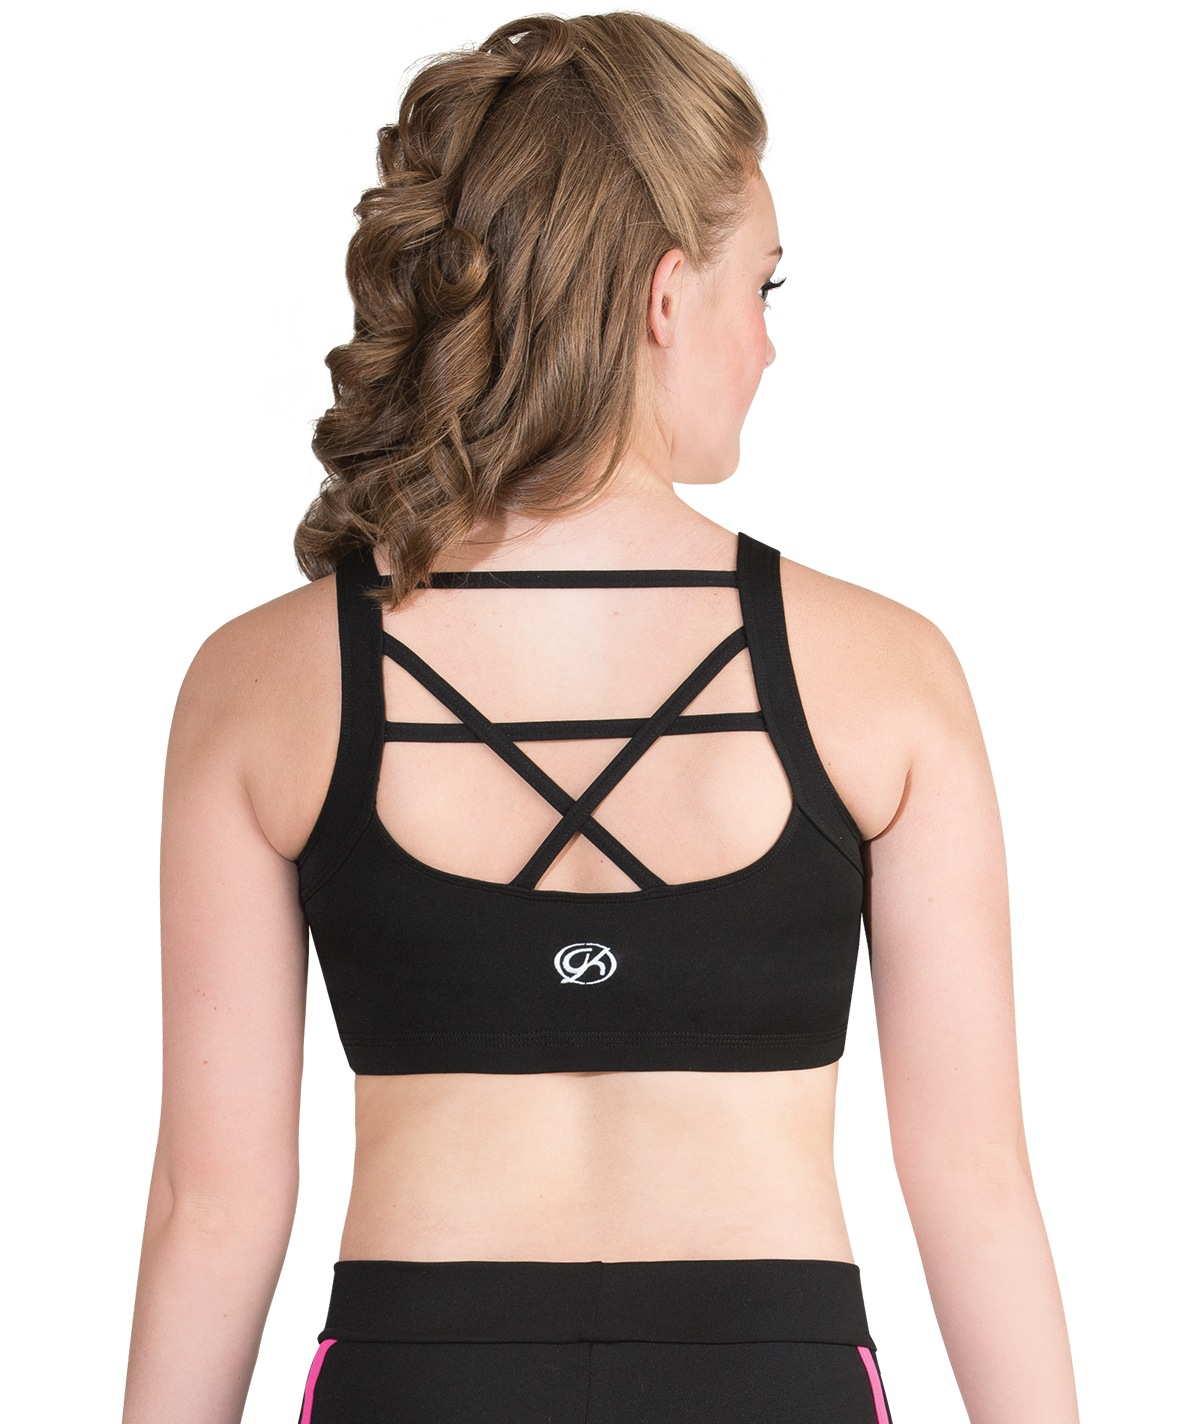 GK All Star Crisscross Strappy Back Crop Top